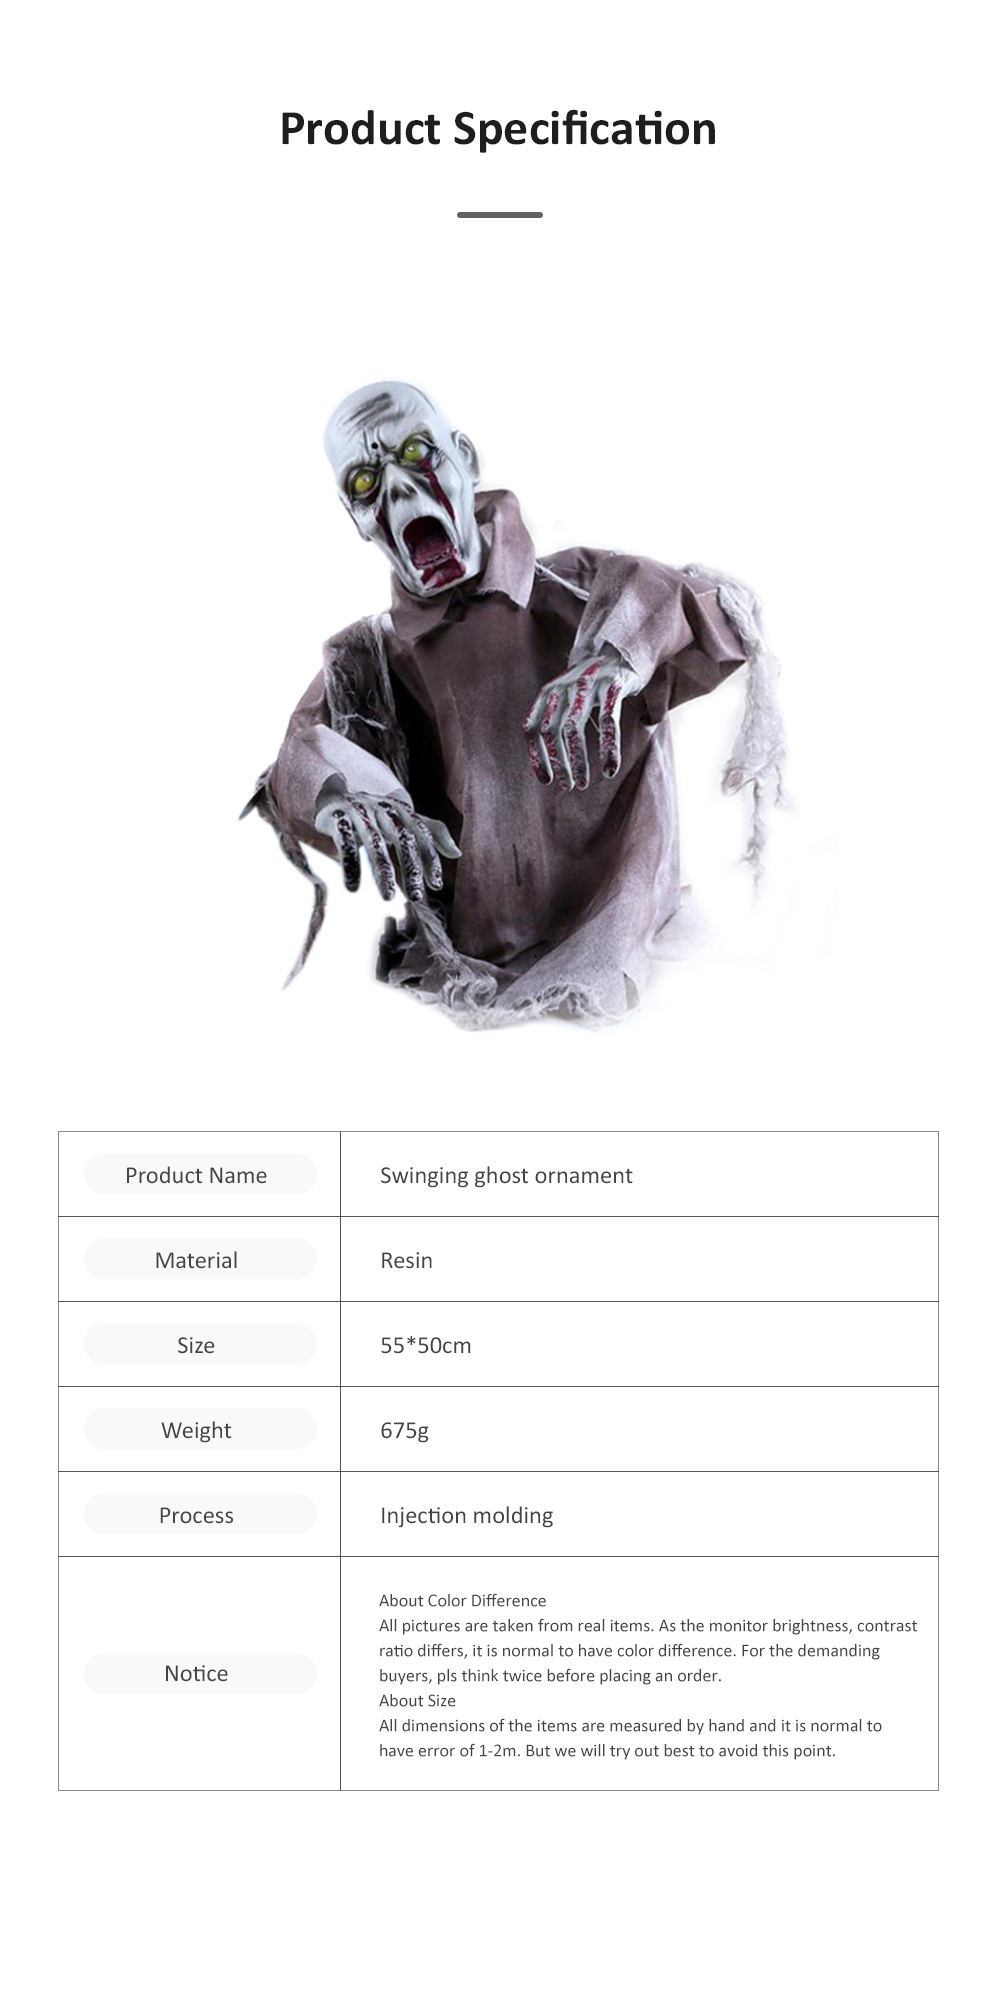 New Style Swinging Ghost Ornament for Room Escape Decoration Large Size Zombie Toy Electronic Horrible Standing Dancing Ghost Zombie Props 6